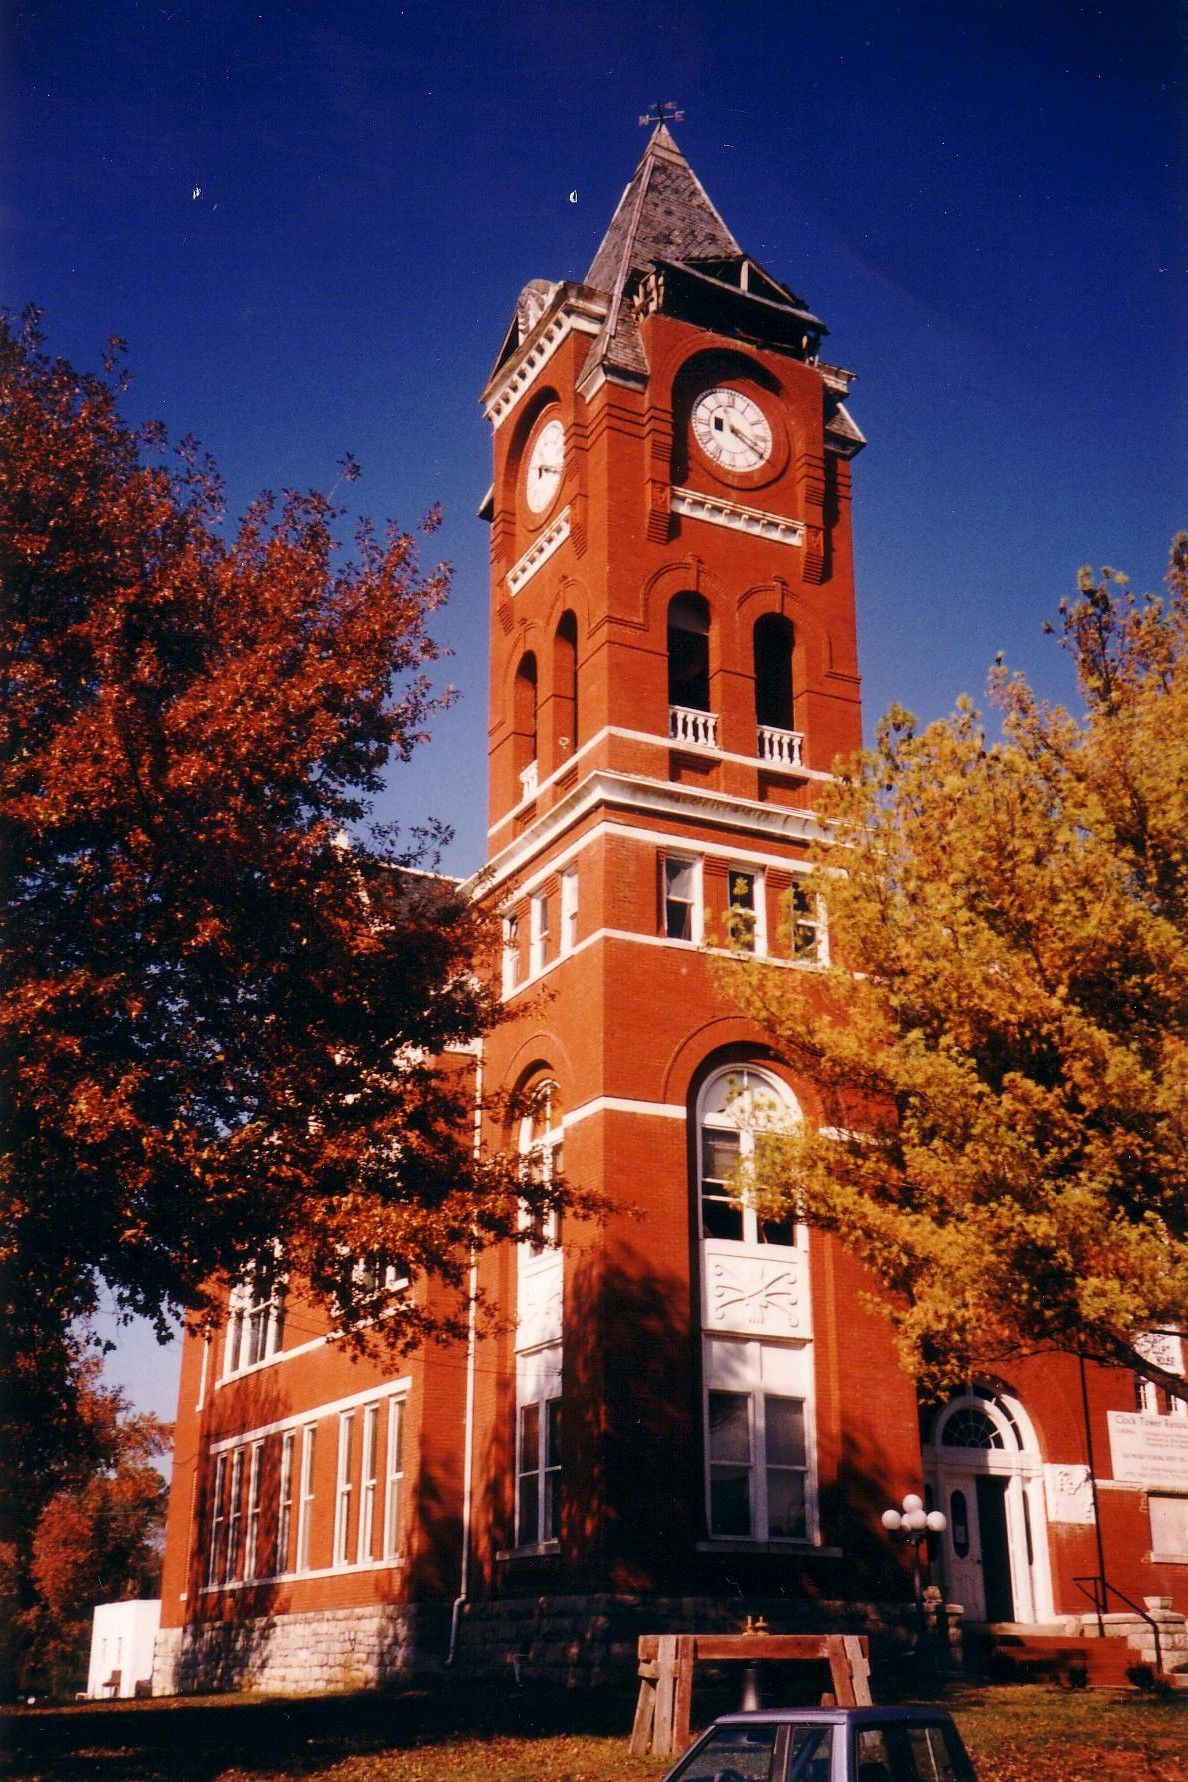 Haralson County Courthouse, Buchanan, Ga. Sweetwater